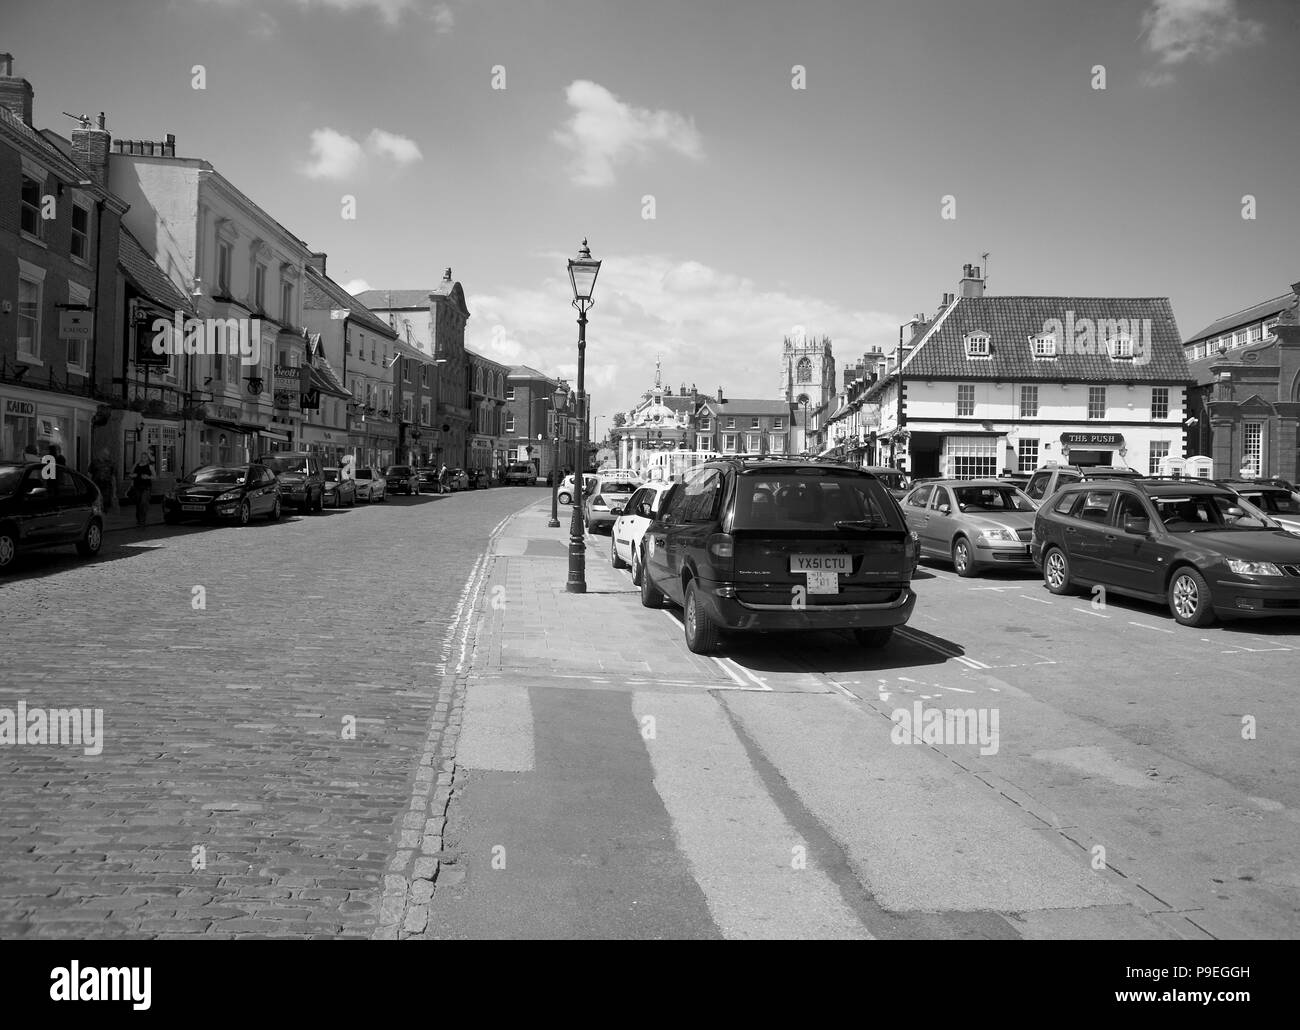 Beverley, East Yorkshire, England UK - Stock Image